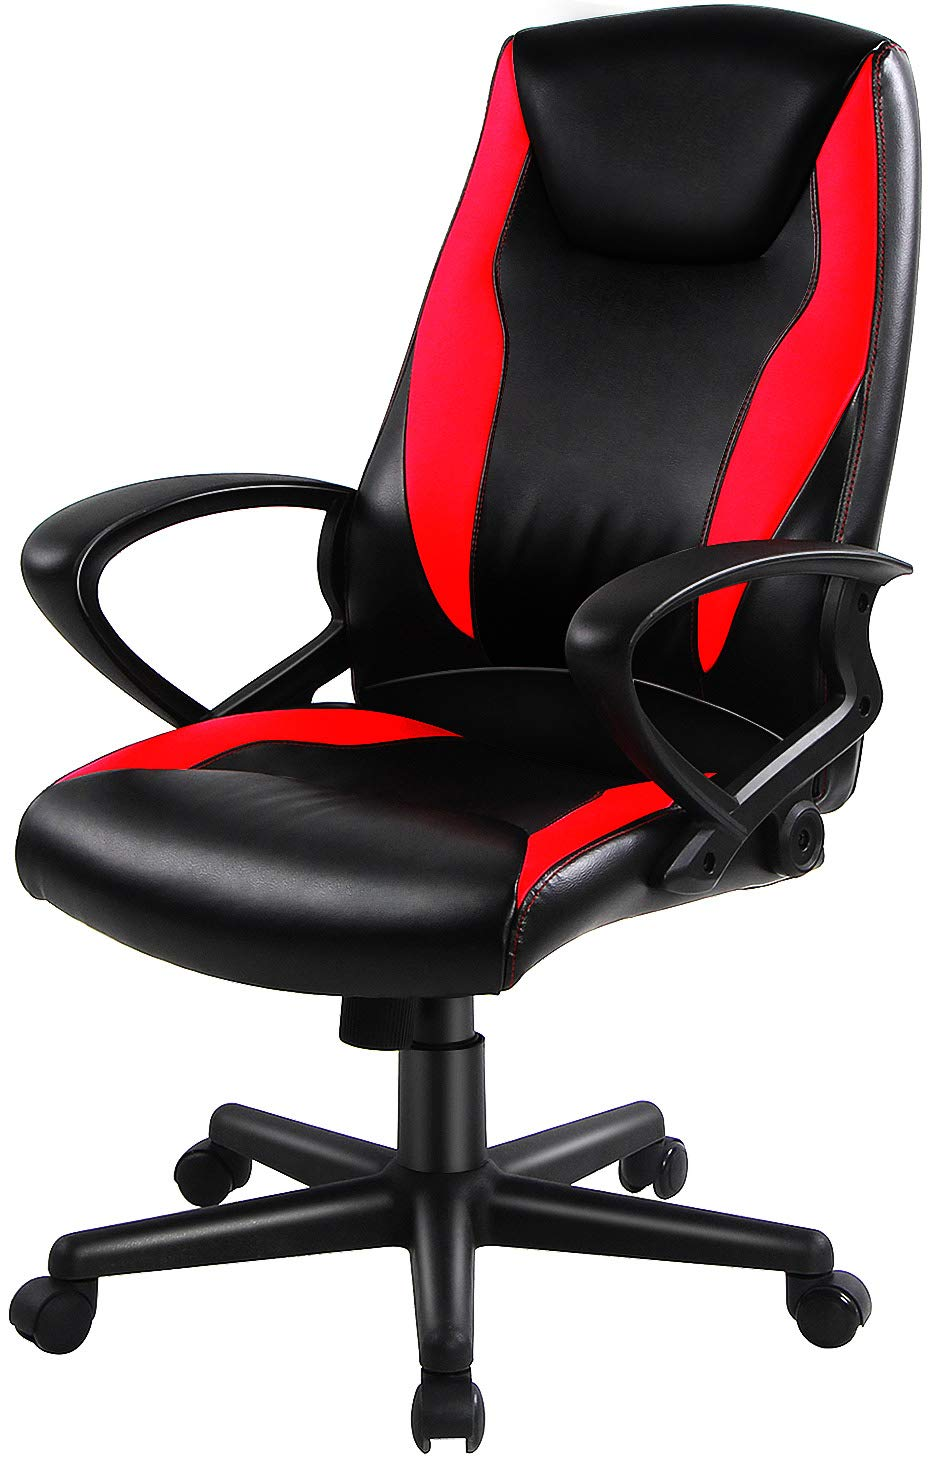 Smugdesk Bonded Leather Racing Car Style Office Task Chair with Fashionable High Back,Black and Red